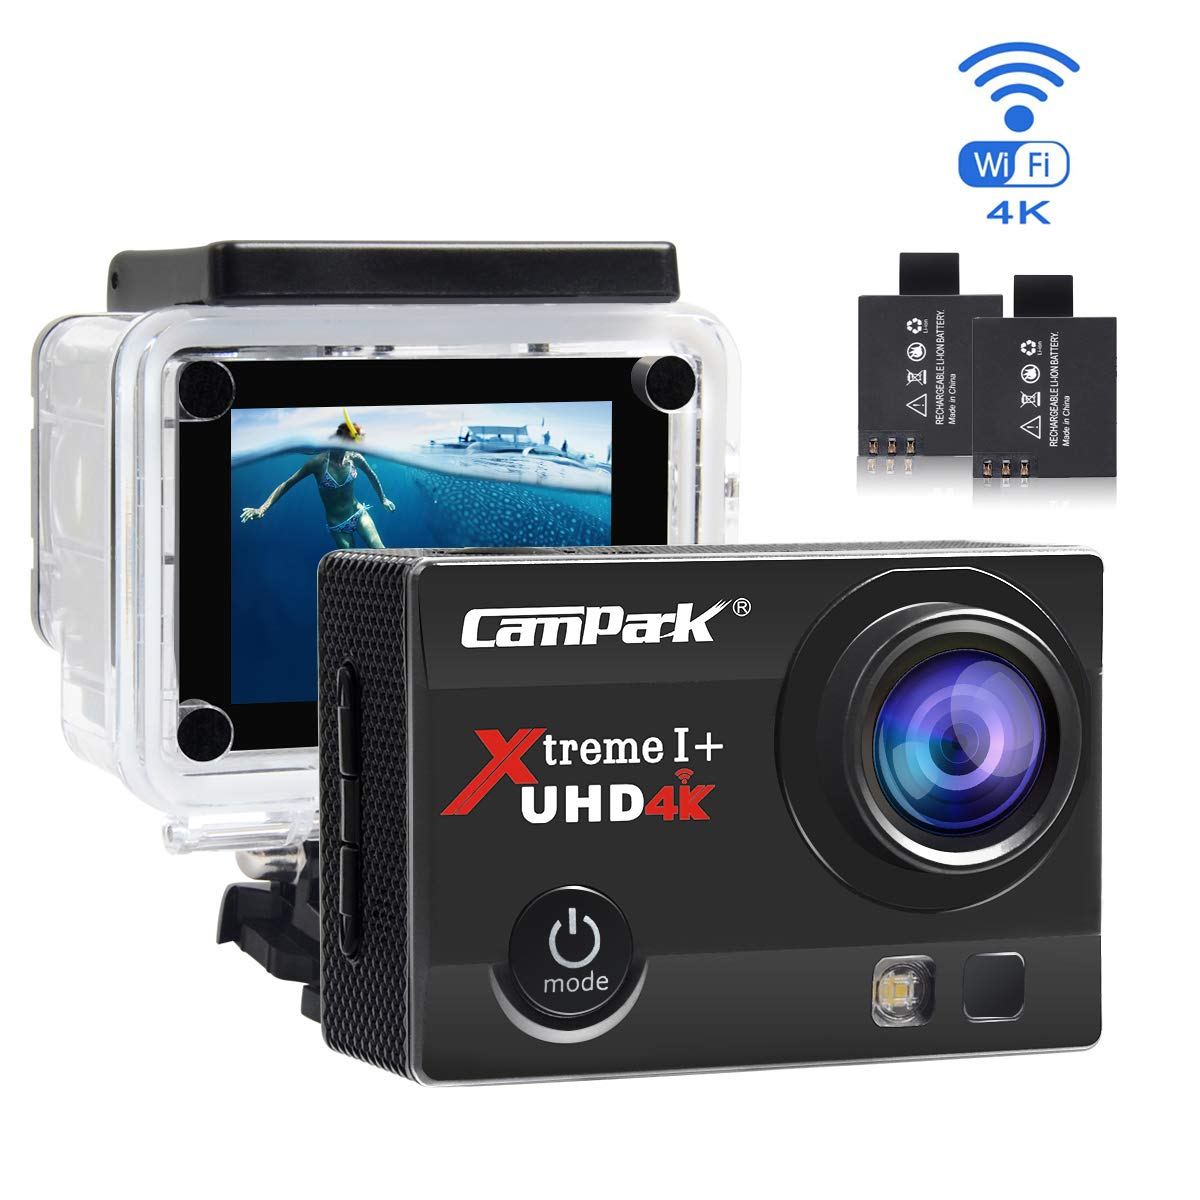 Action Cam Campark 4K Wifi Sports Action Kamera 16MP Ultra Full HD Helmkamera Wasserdicht mit Dual Batterien und Kostenlose Zubehör Kits ACT74-DE